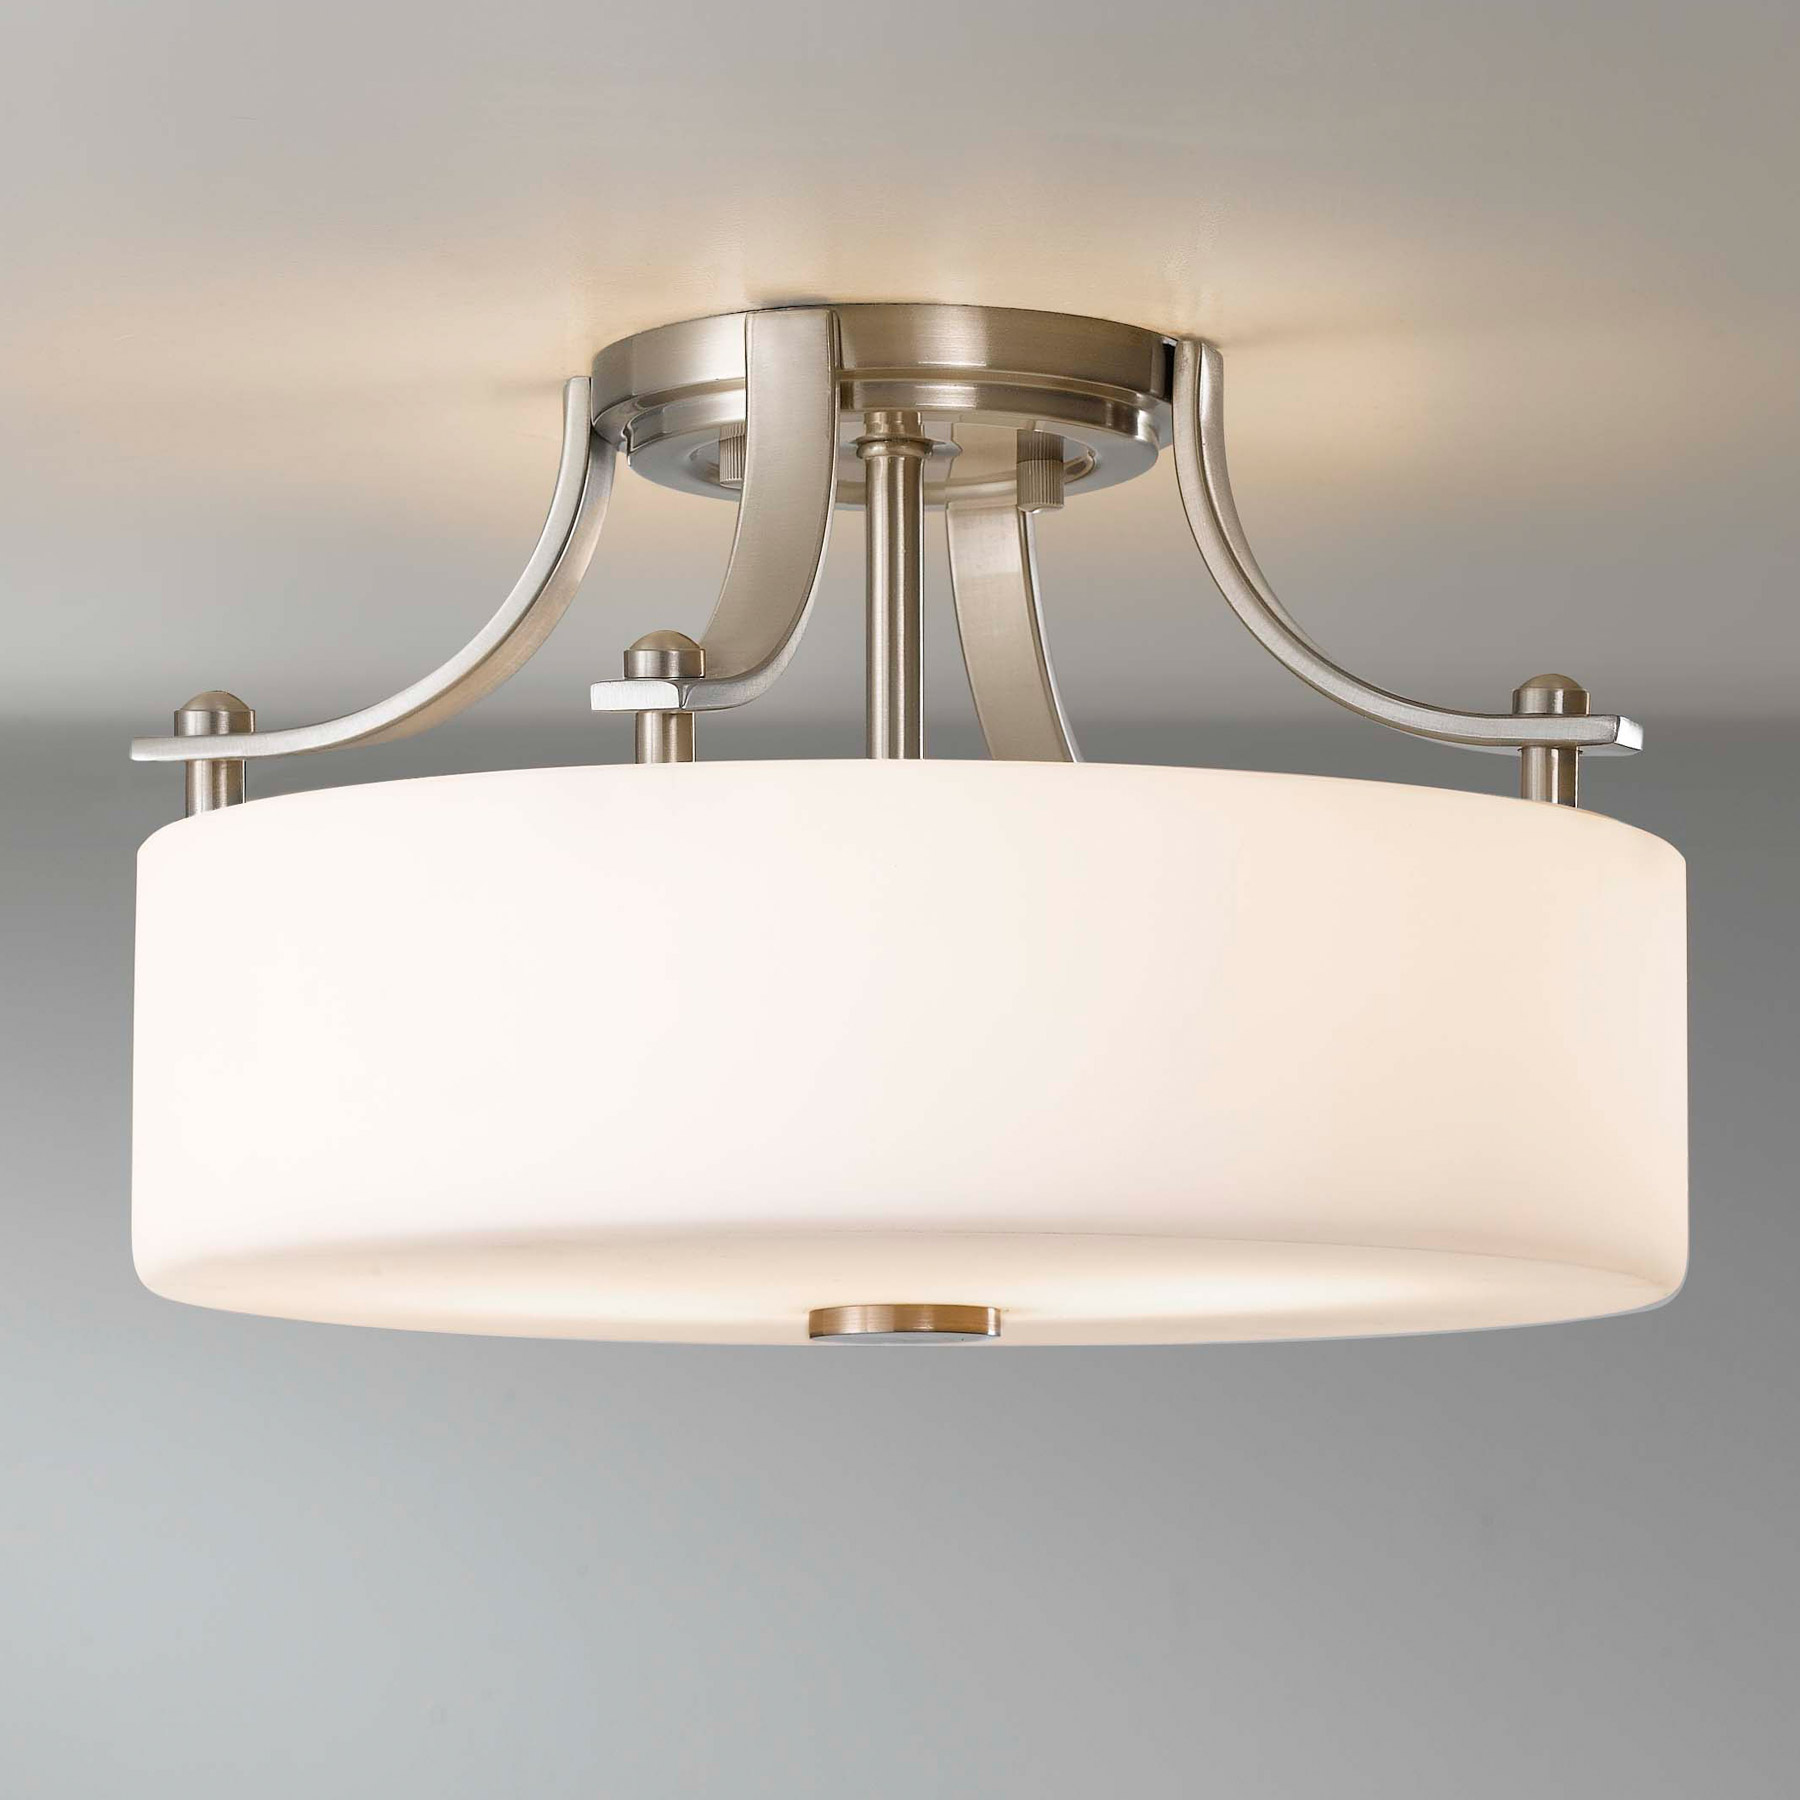 Flush mount ceiling light fixtures for both indoors and for A lamp and fixture